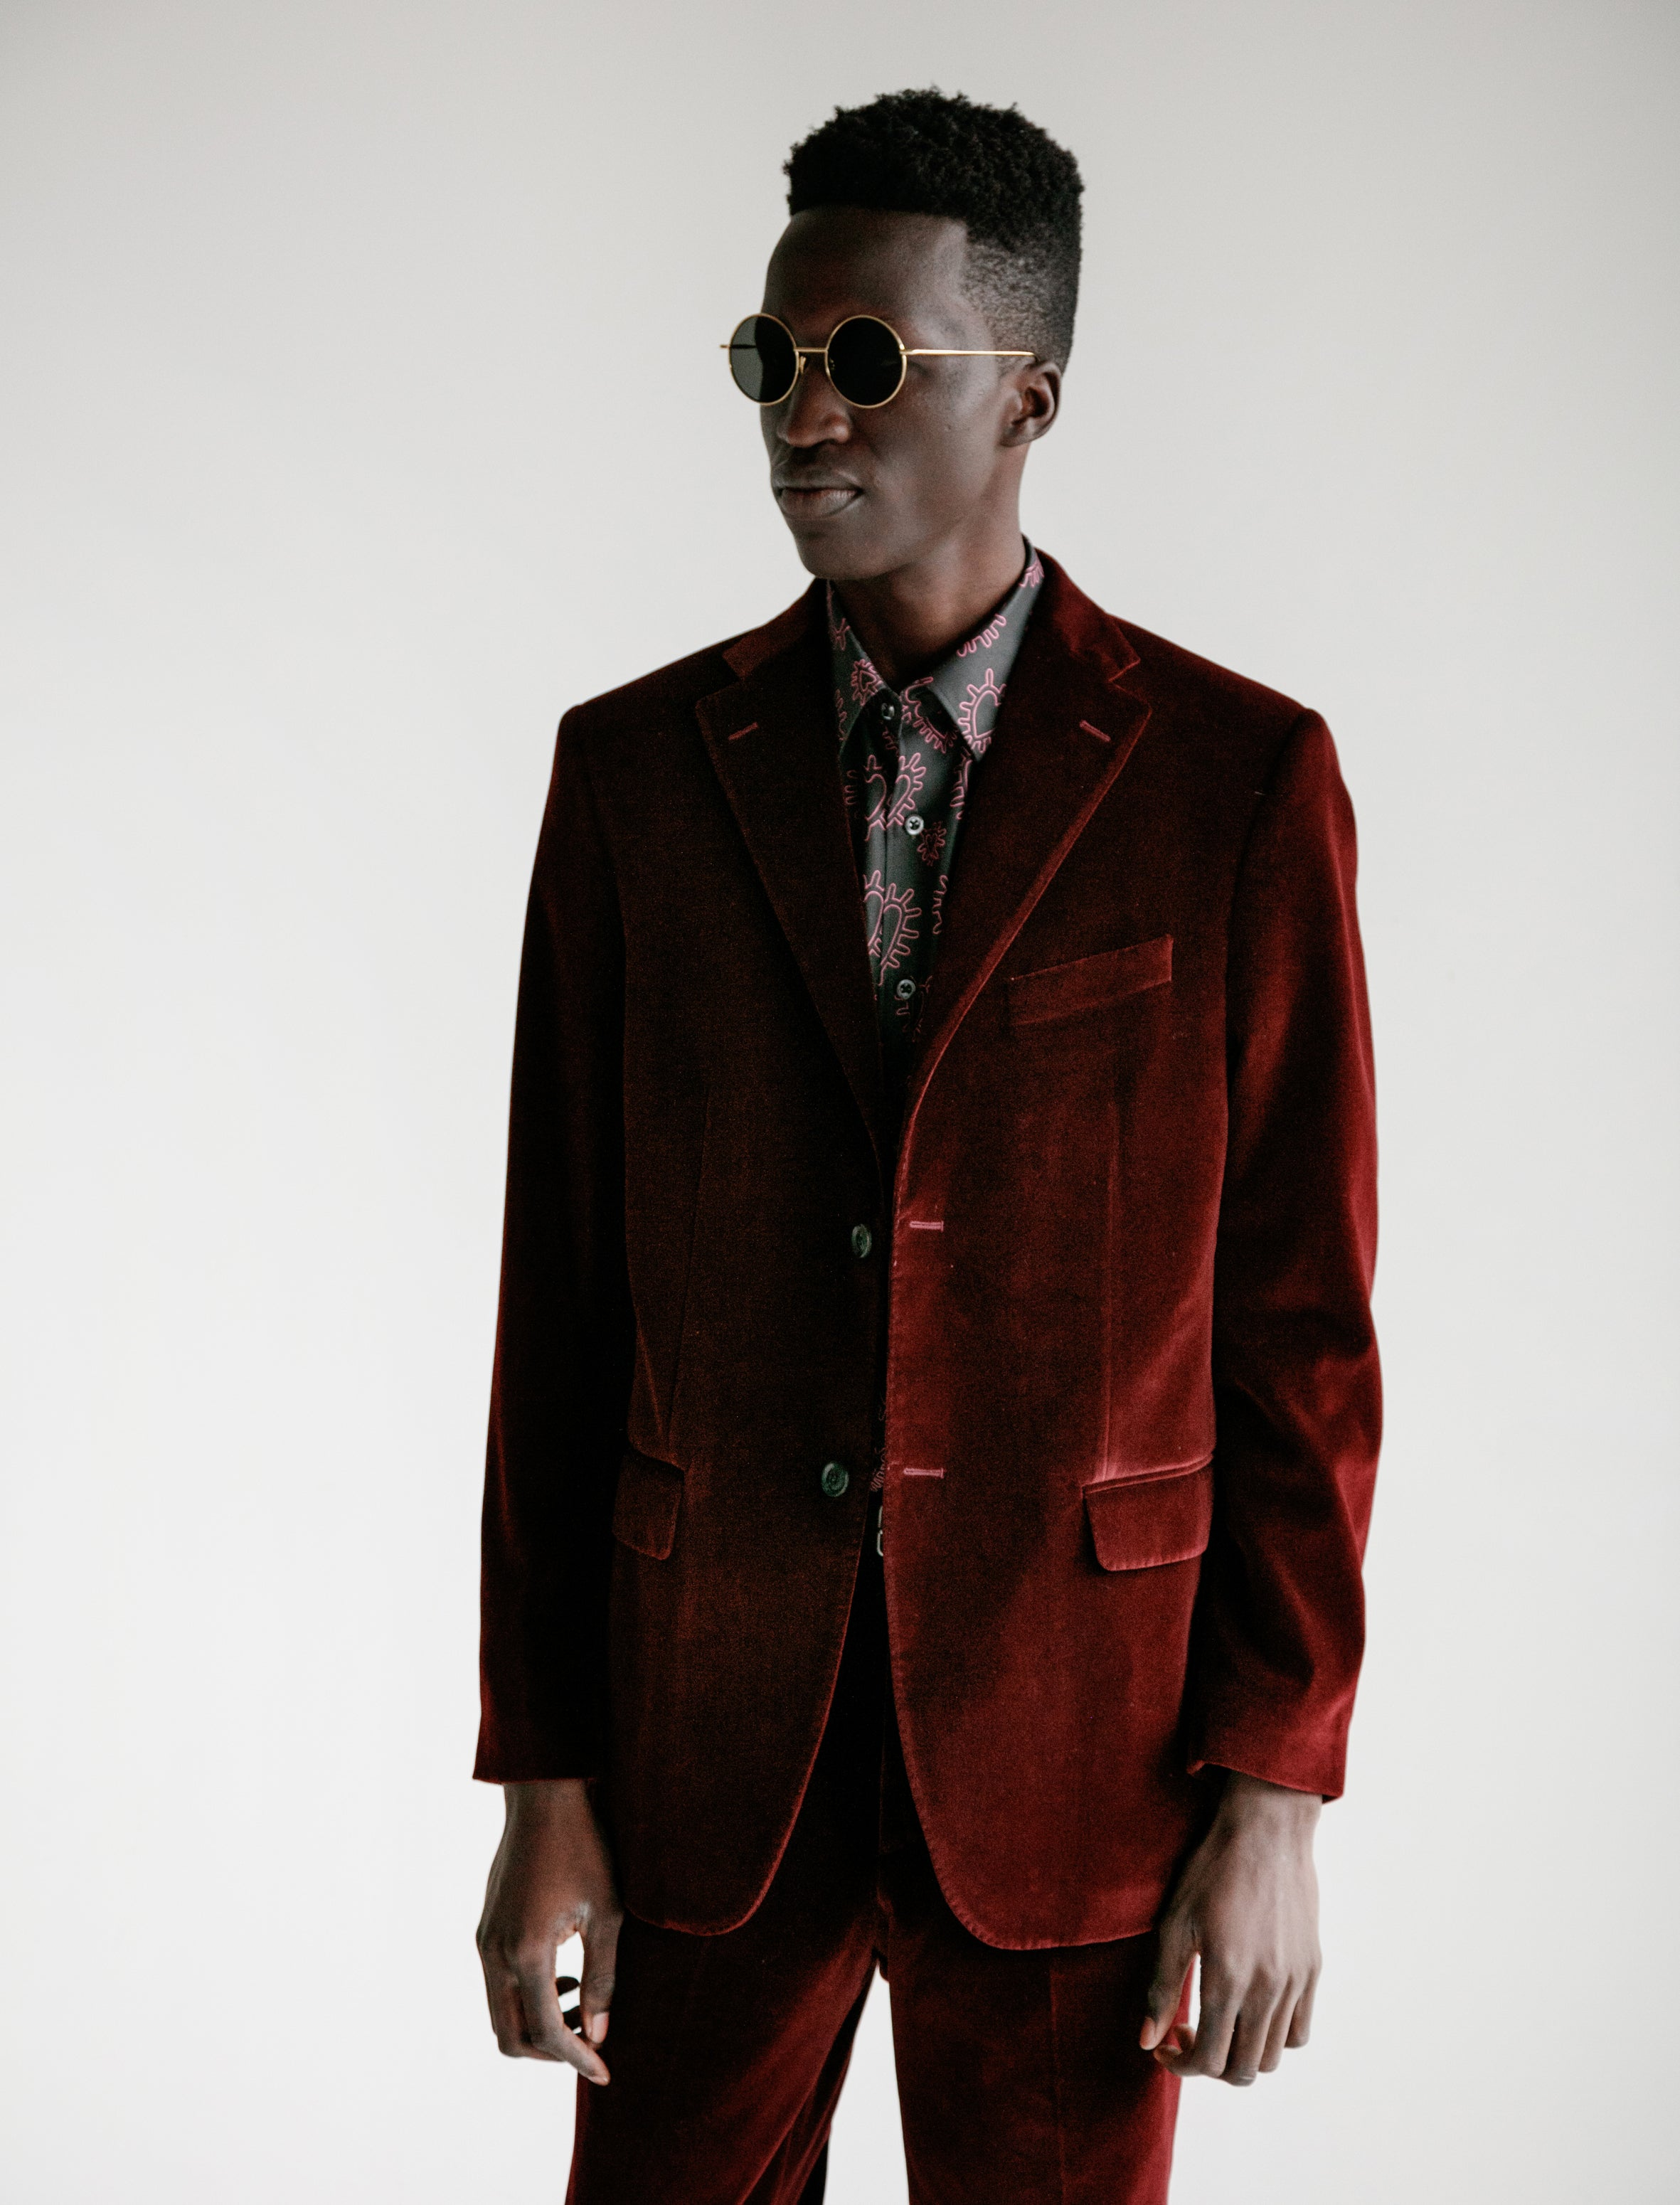 Cobra S.C. Notch Lapel Jacket Cotton Velvet Bordeaux